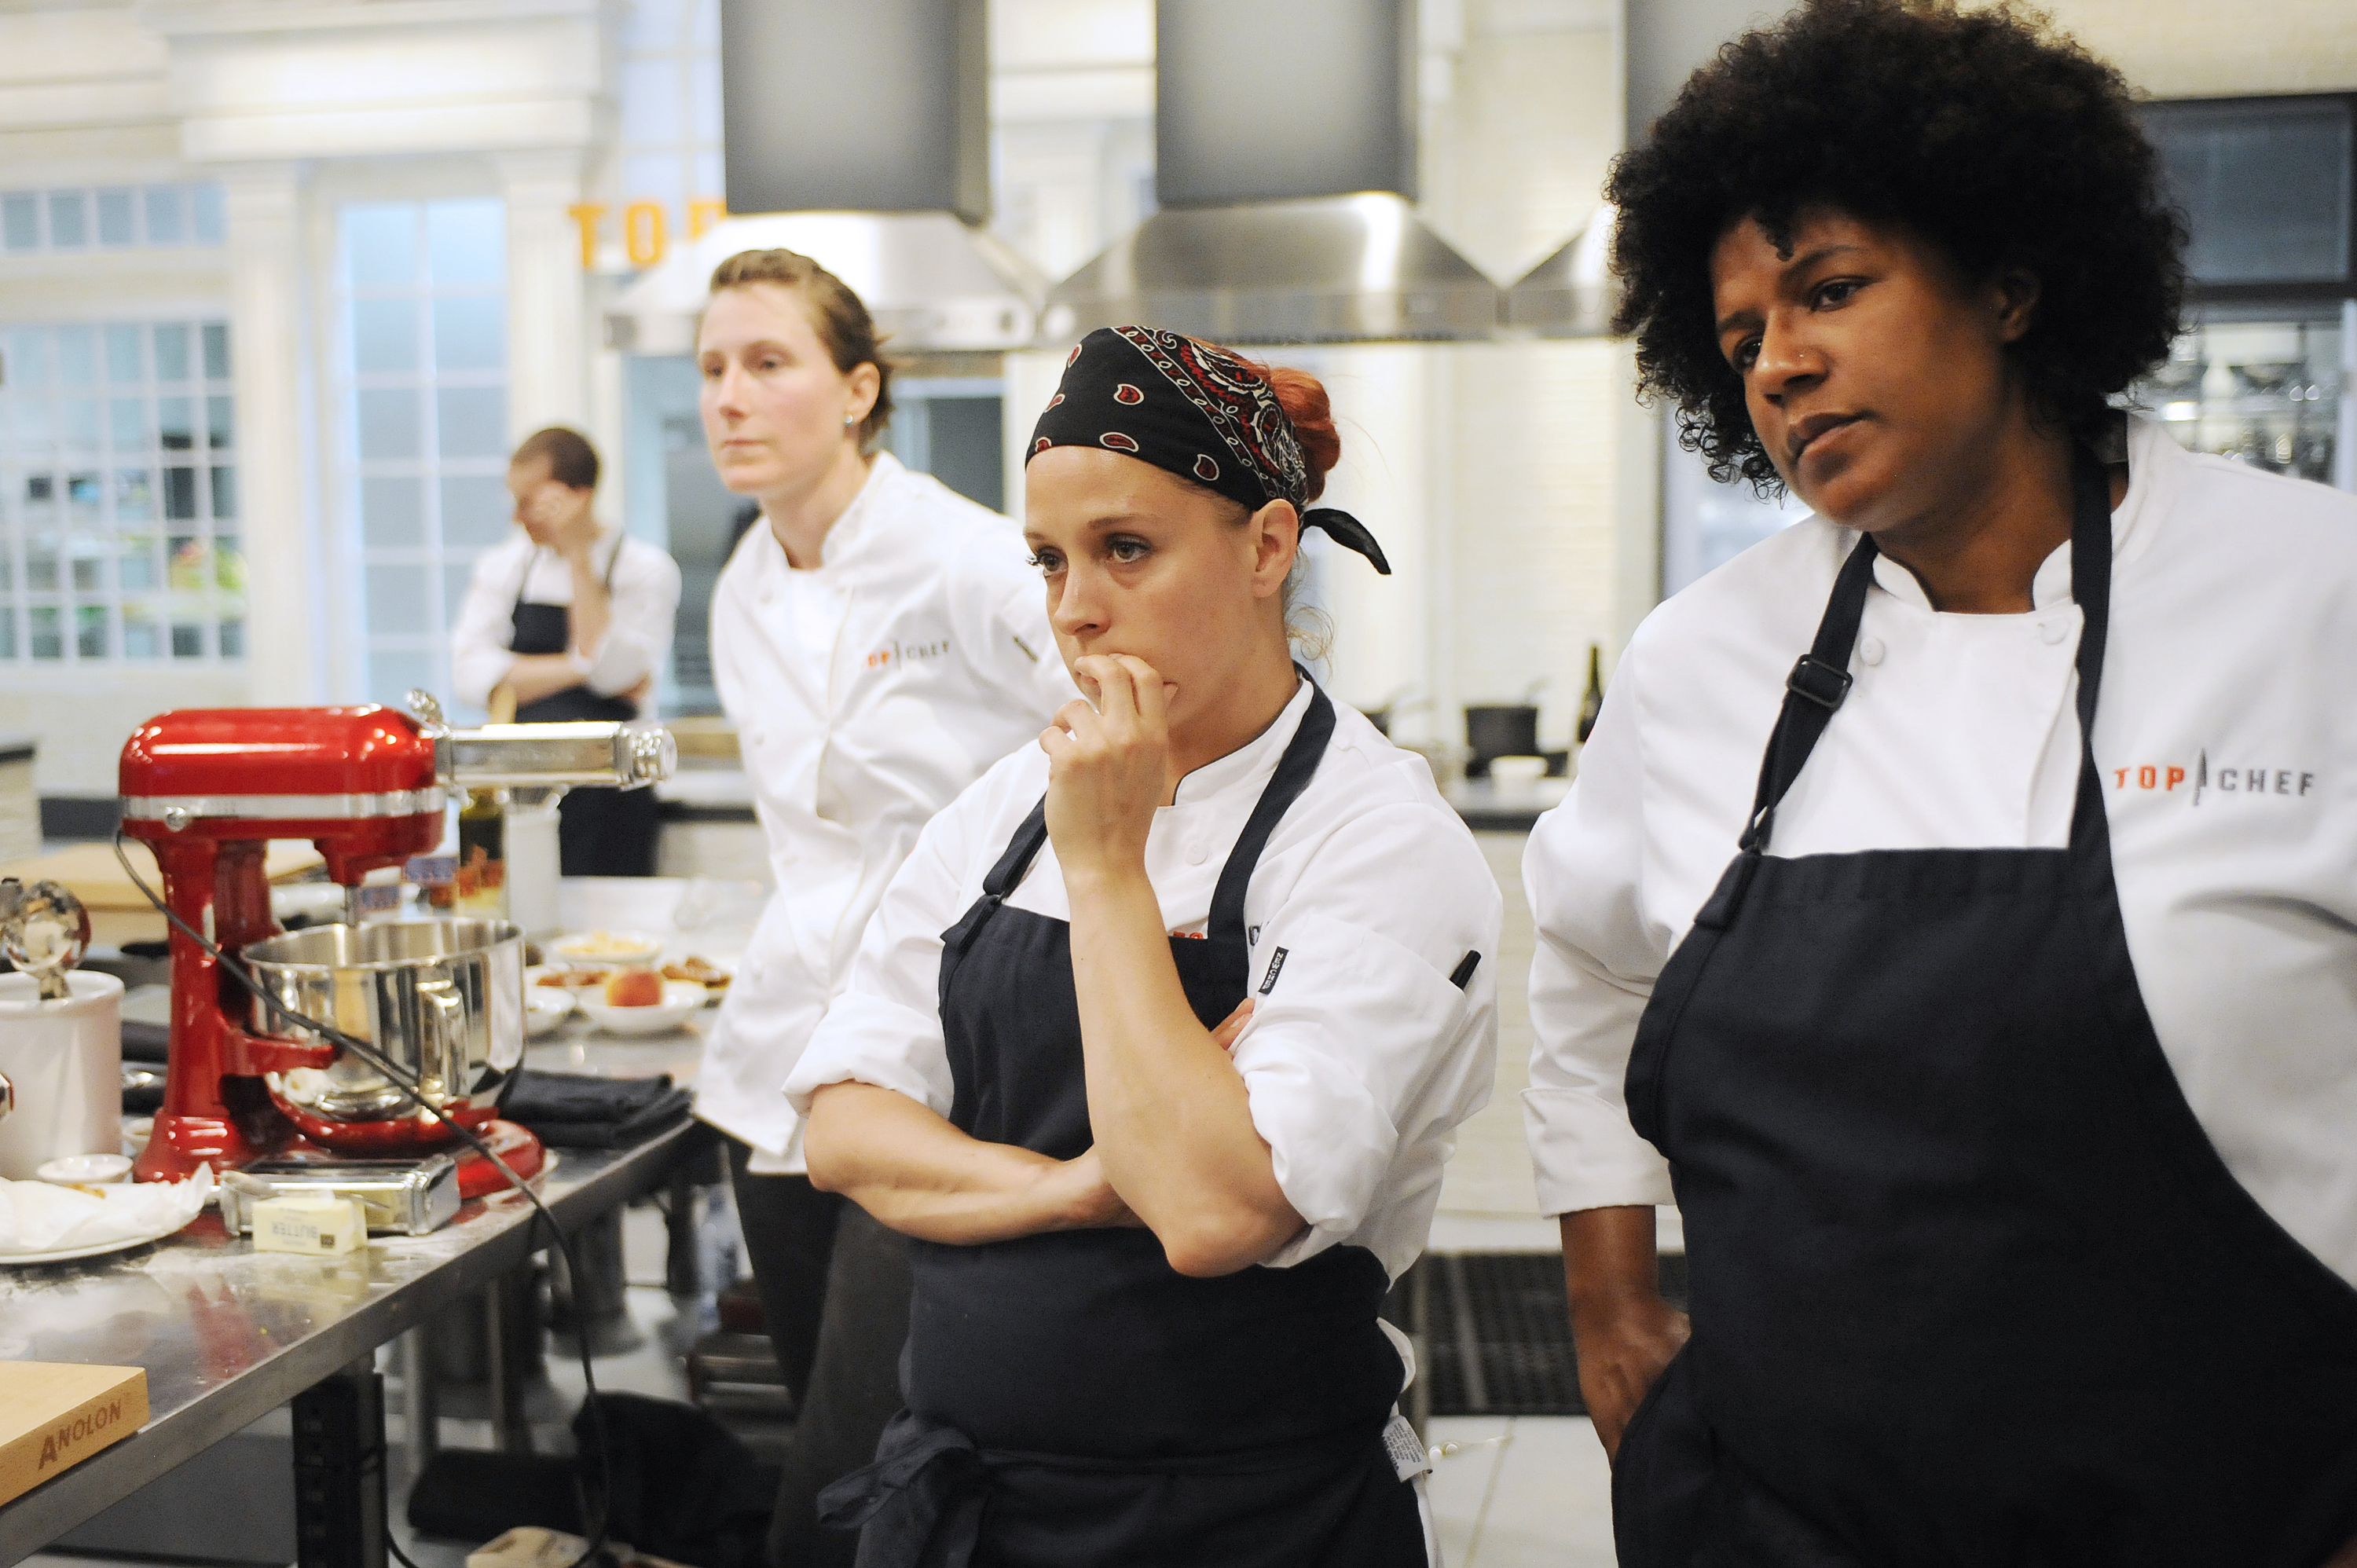 TOP CHEF --  Boston's Bravest and Finest  Episode 1202 -- Pictured: (l-r) James Rigato, Katie Weinner, Stacy Cogswell, Joy Crump -- (Photo by: David Moir/Bravo/NBCU Photo Bank via Getty Images)